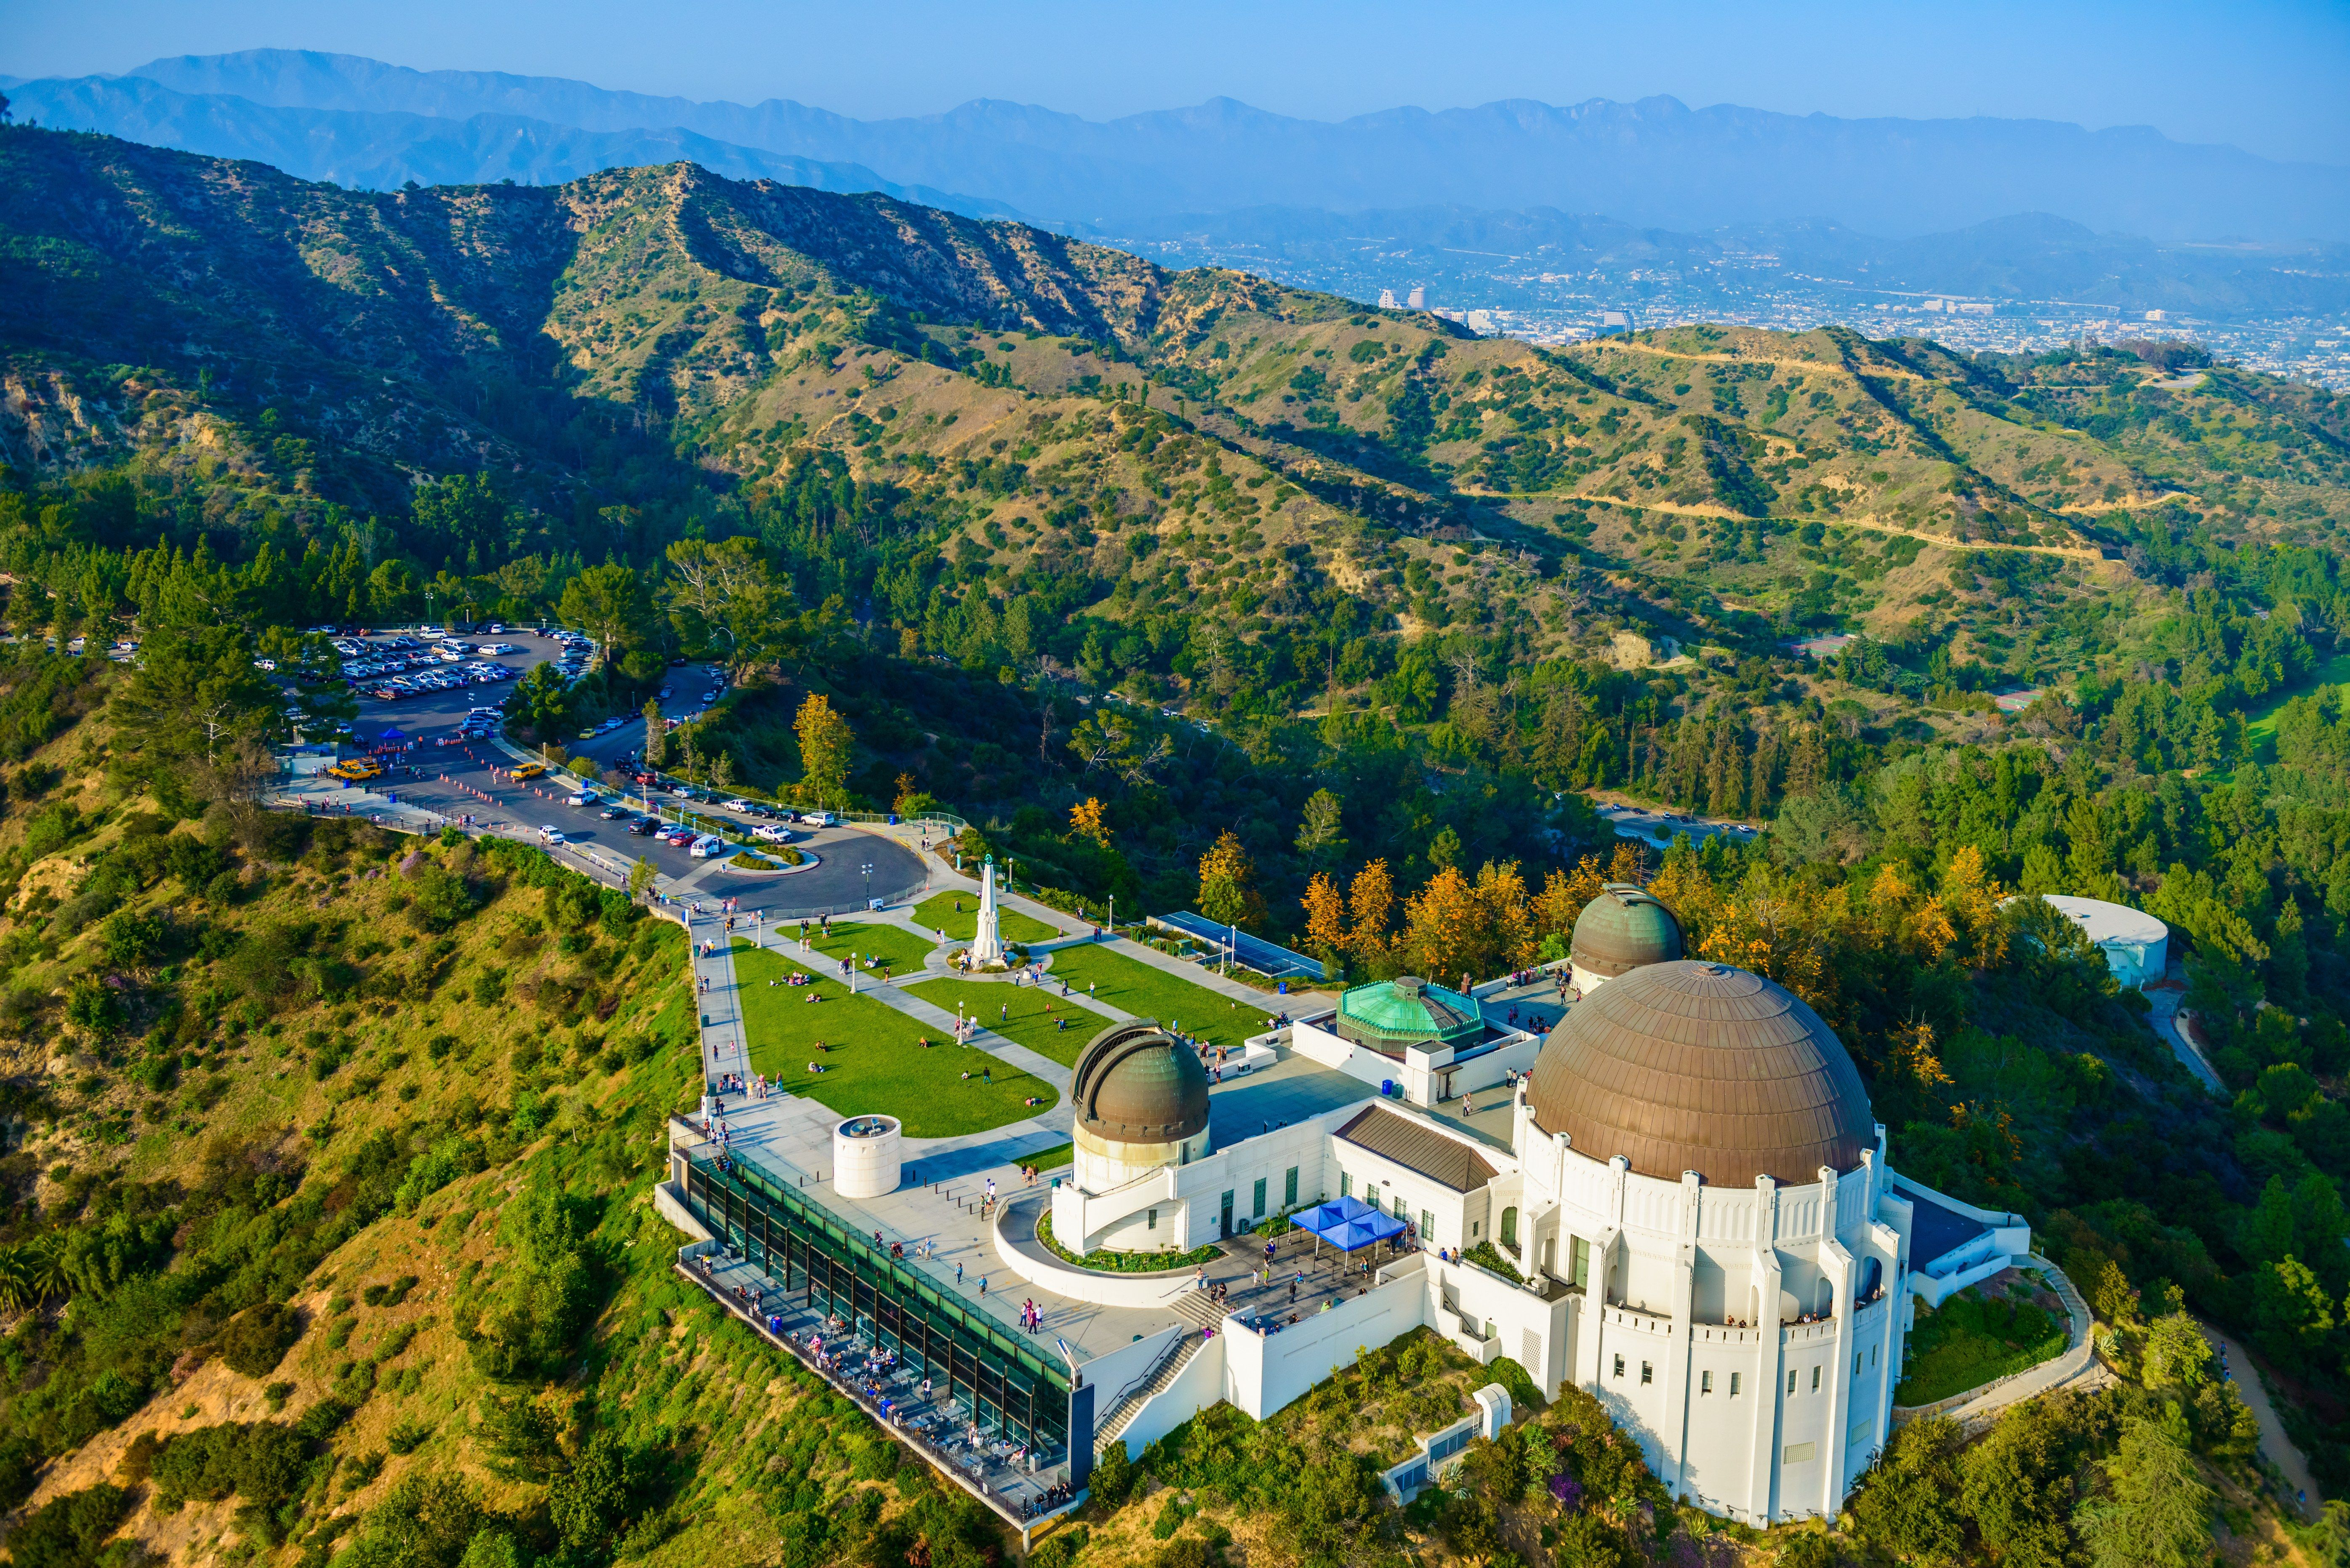 25 Must See Architectural Landmarks In Los Angeles Los Angeles Attractions Griffith Park Film Locations Los Angeles